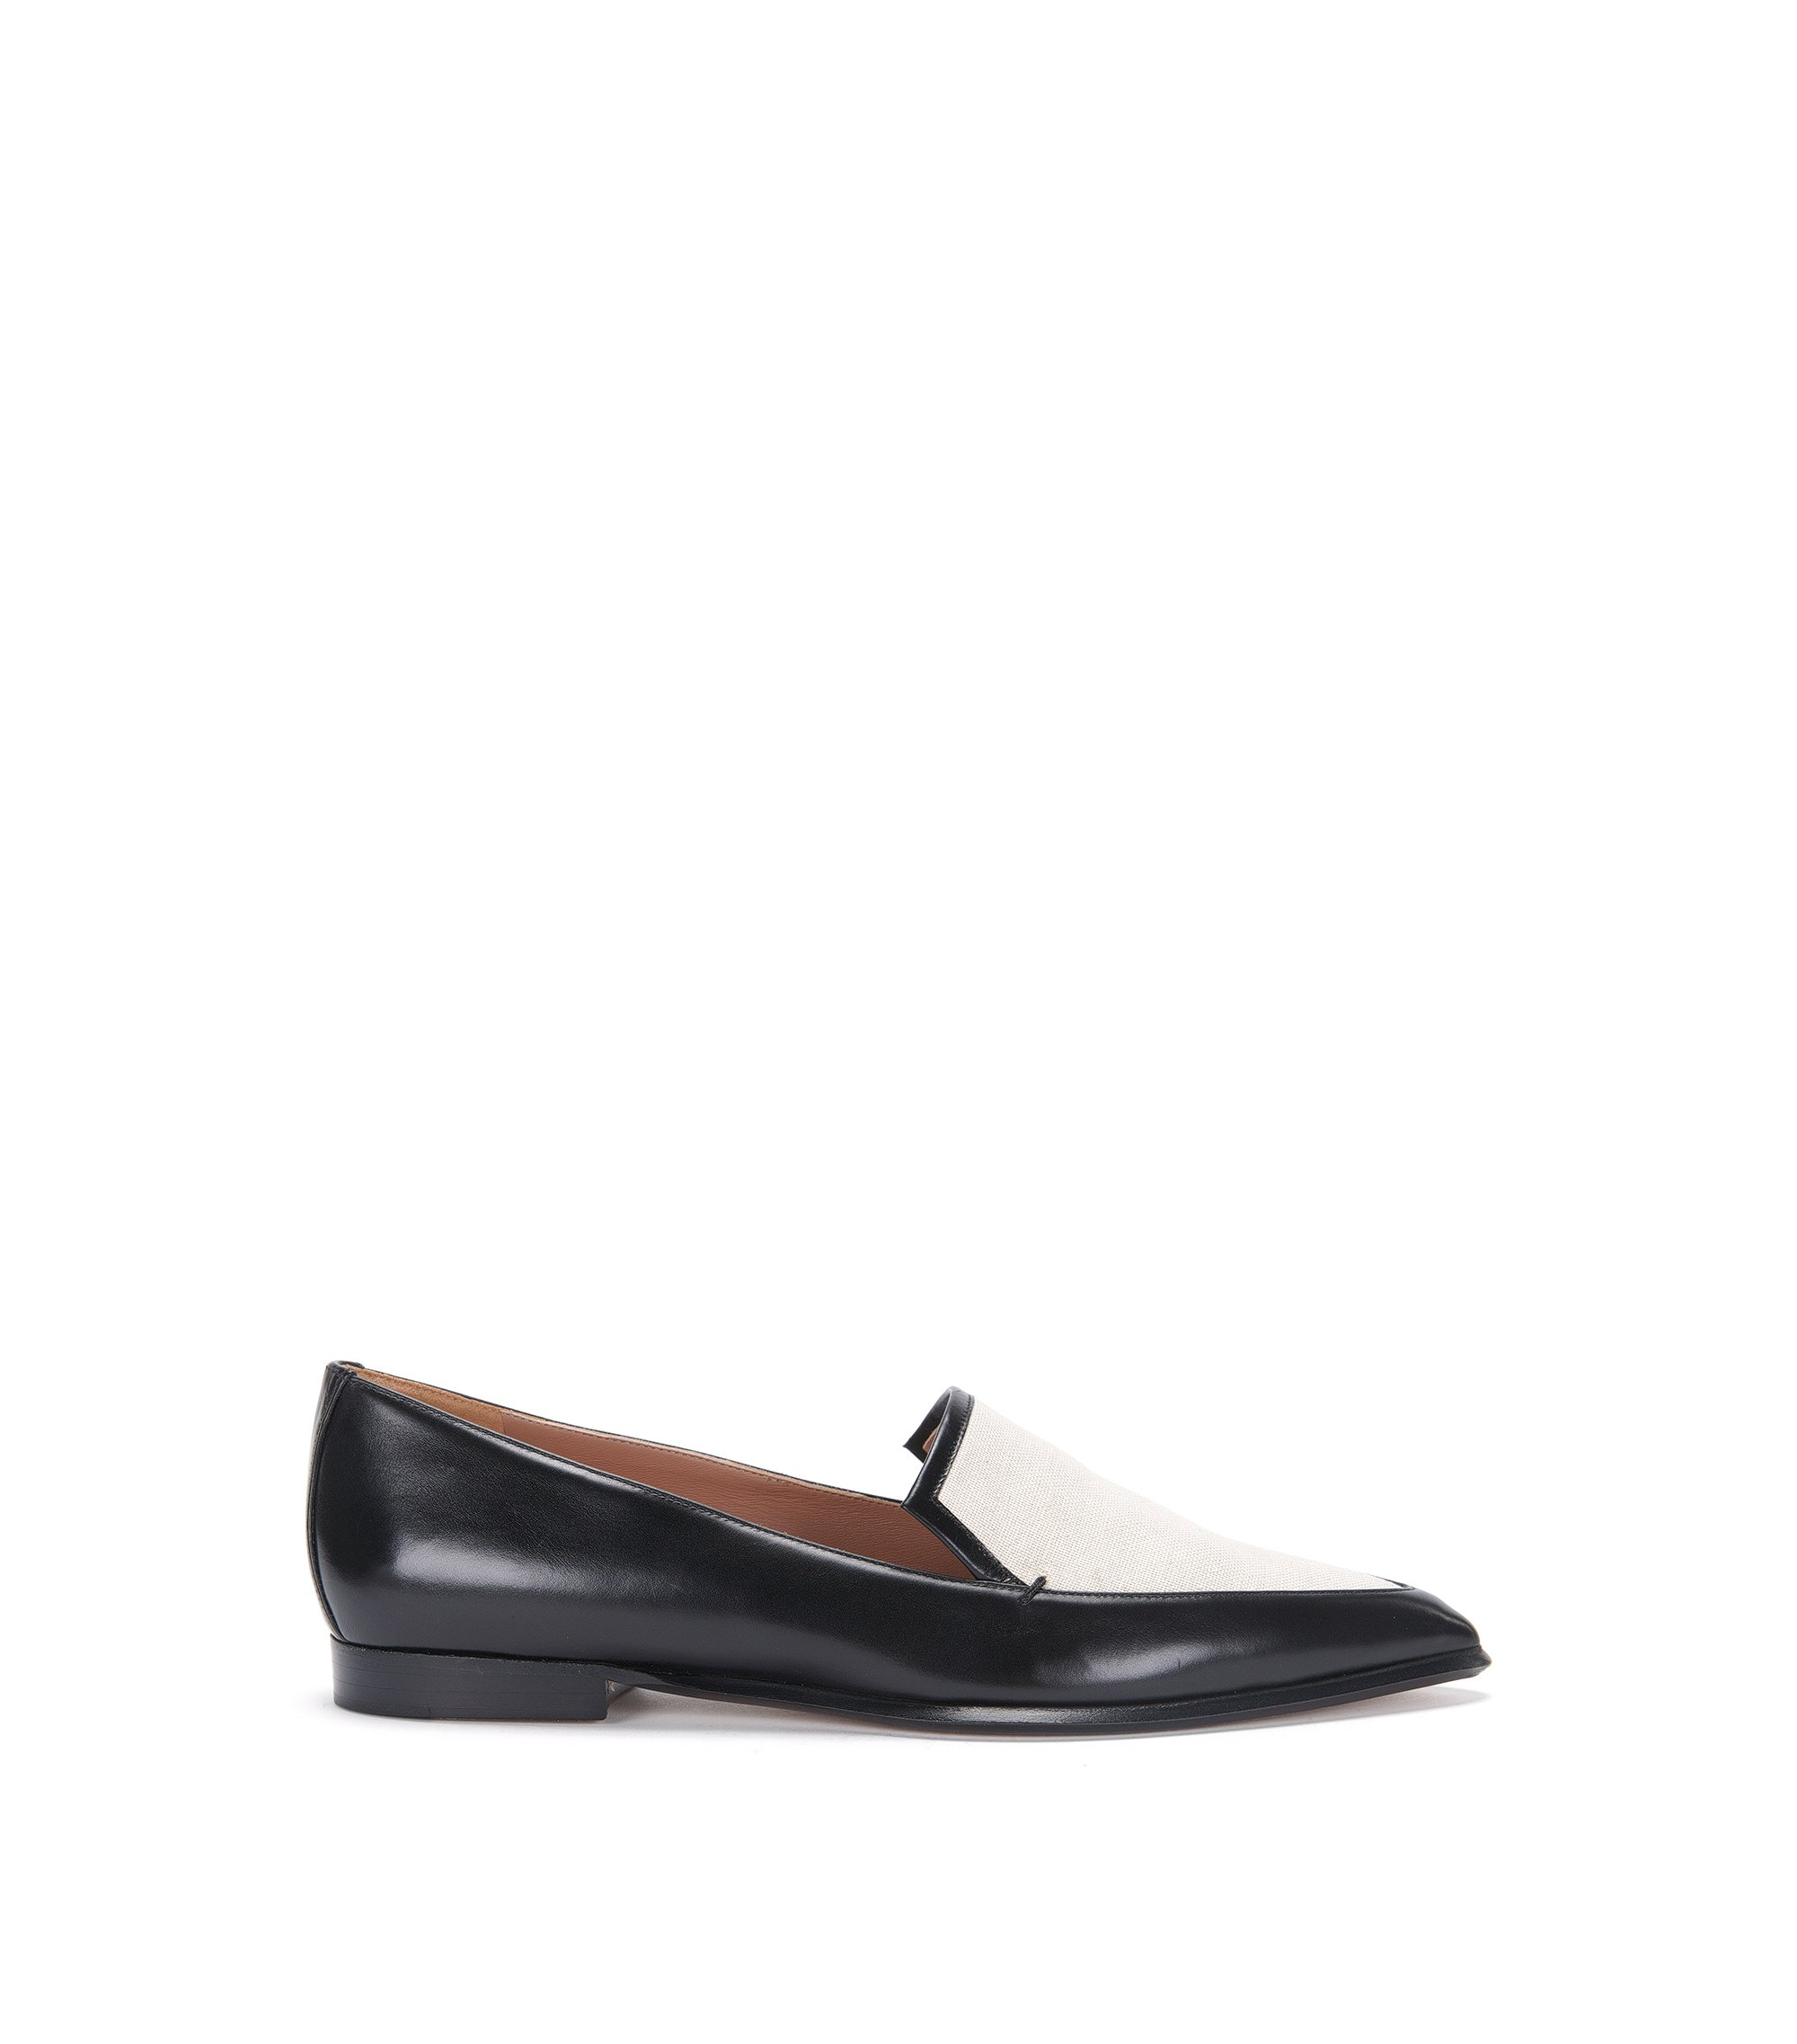 'Canvas Loafer' | Italian Calfskin Canvas Loafers, Natural